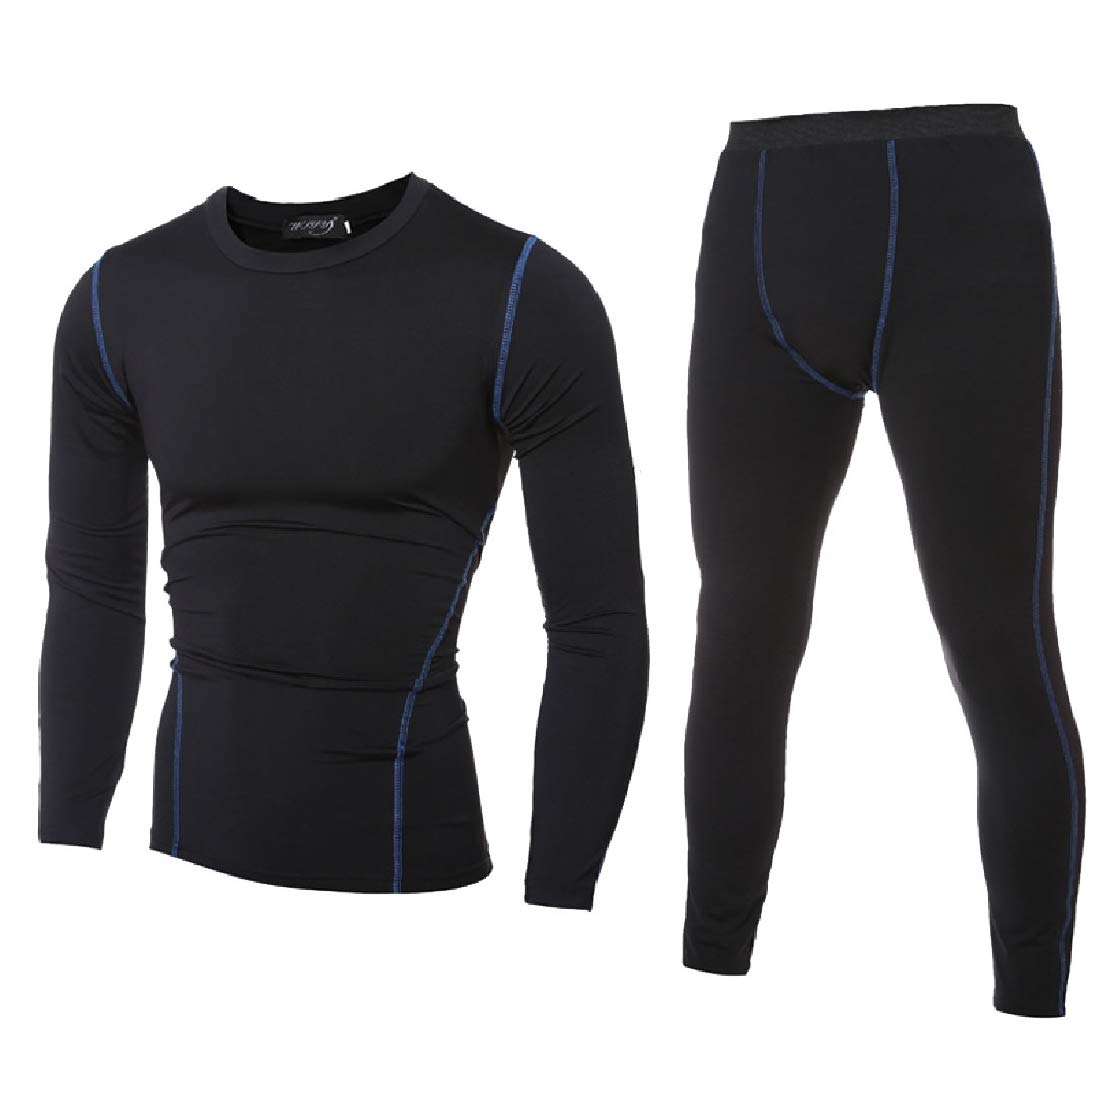 Comaba Men Athletic Quick Drying Jammer Long-Sleeve Activewear Set Top/&Pants